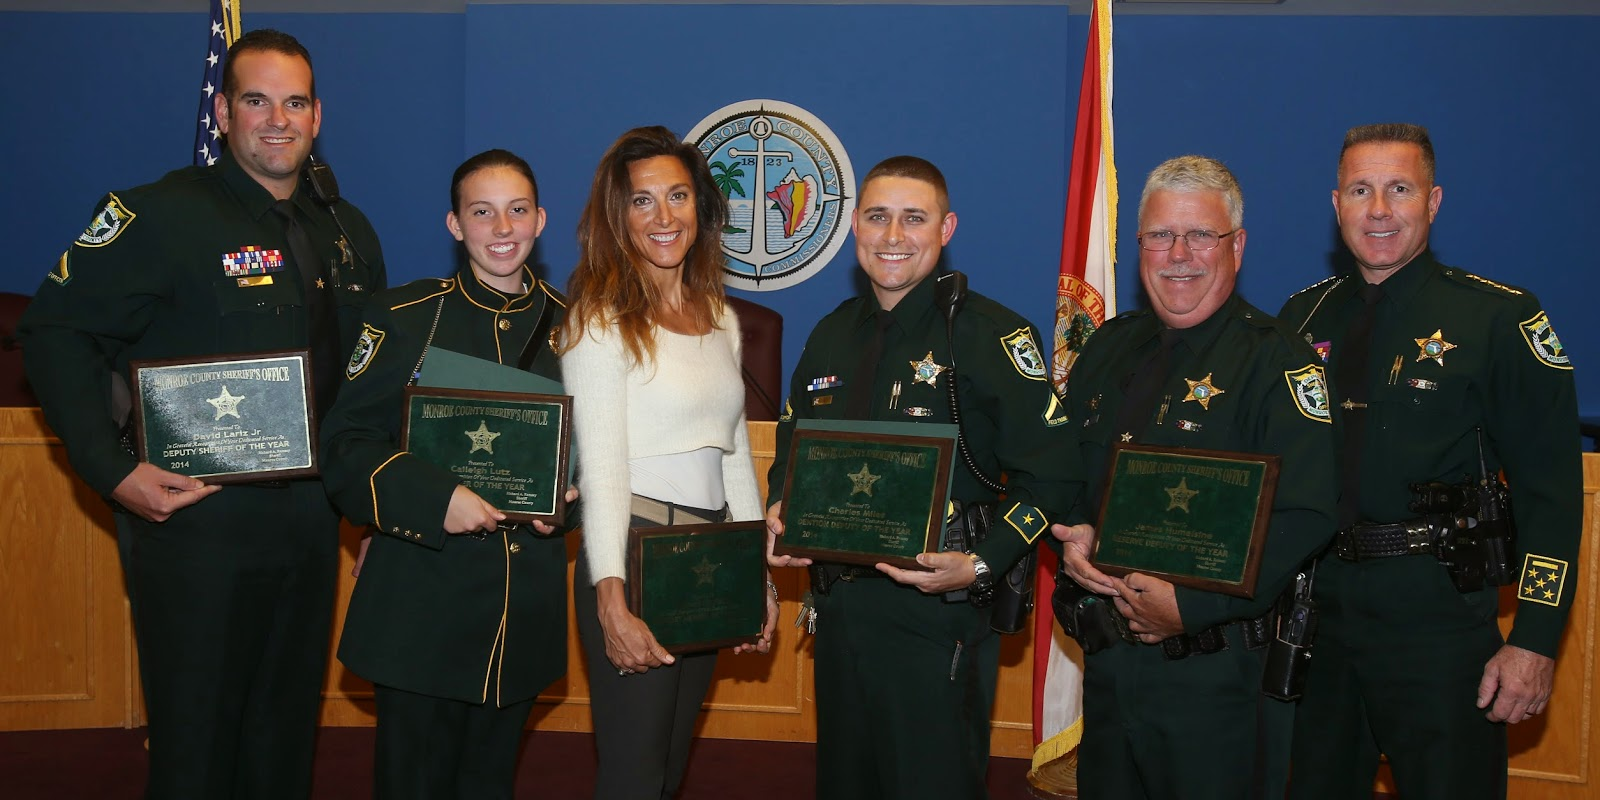 Monroe County Sheriff's Office: Sheriff honors employees of the year